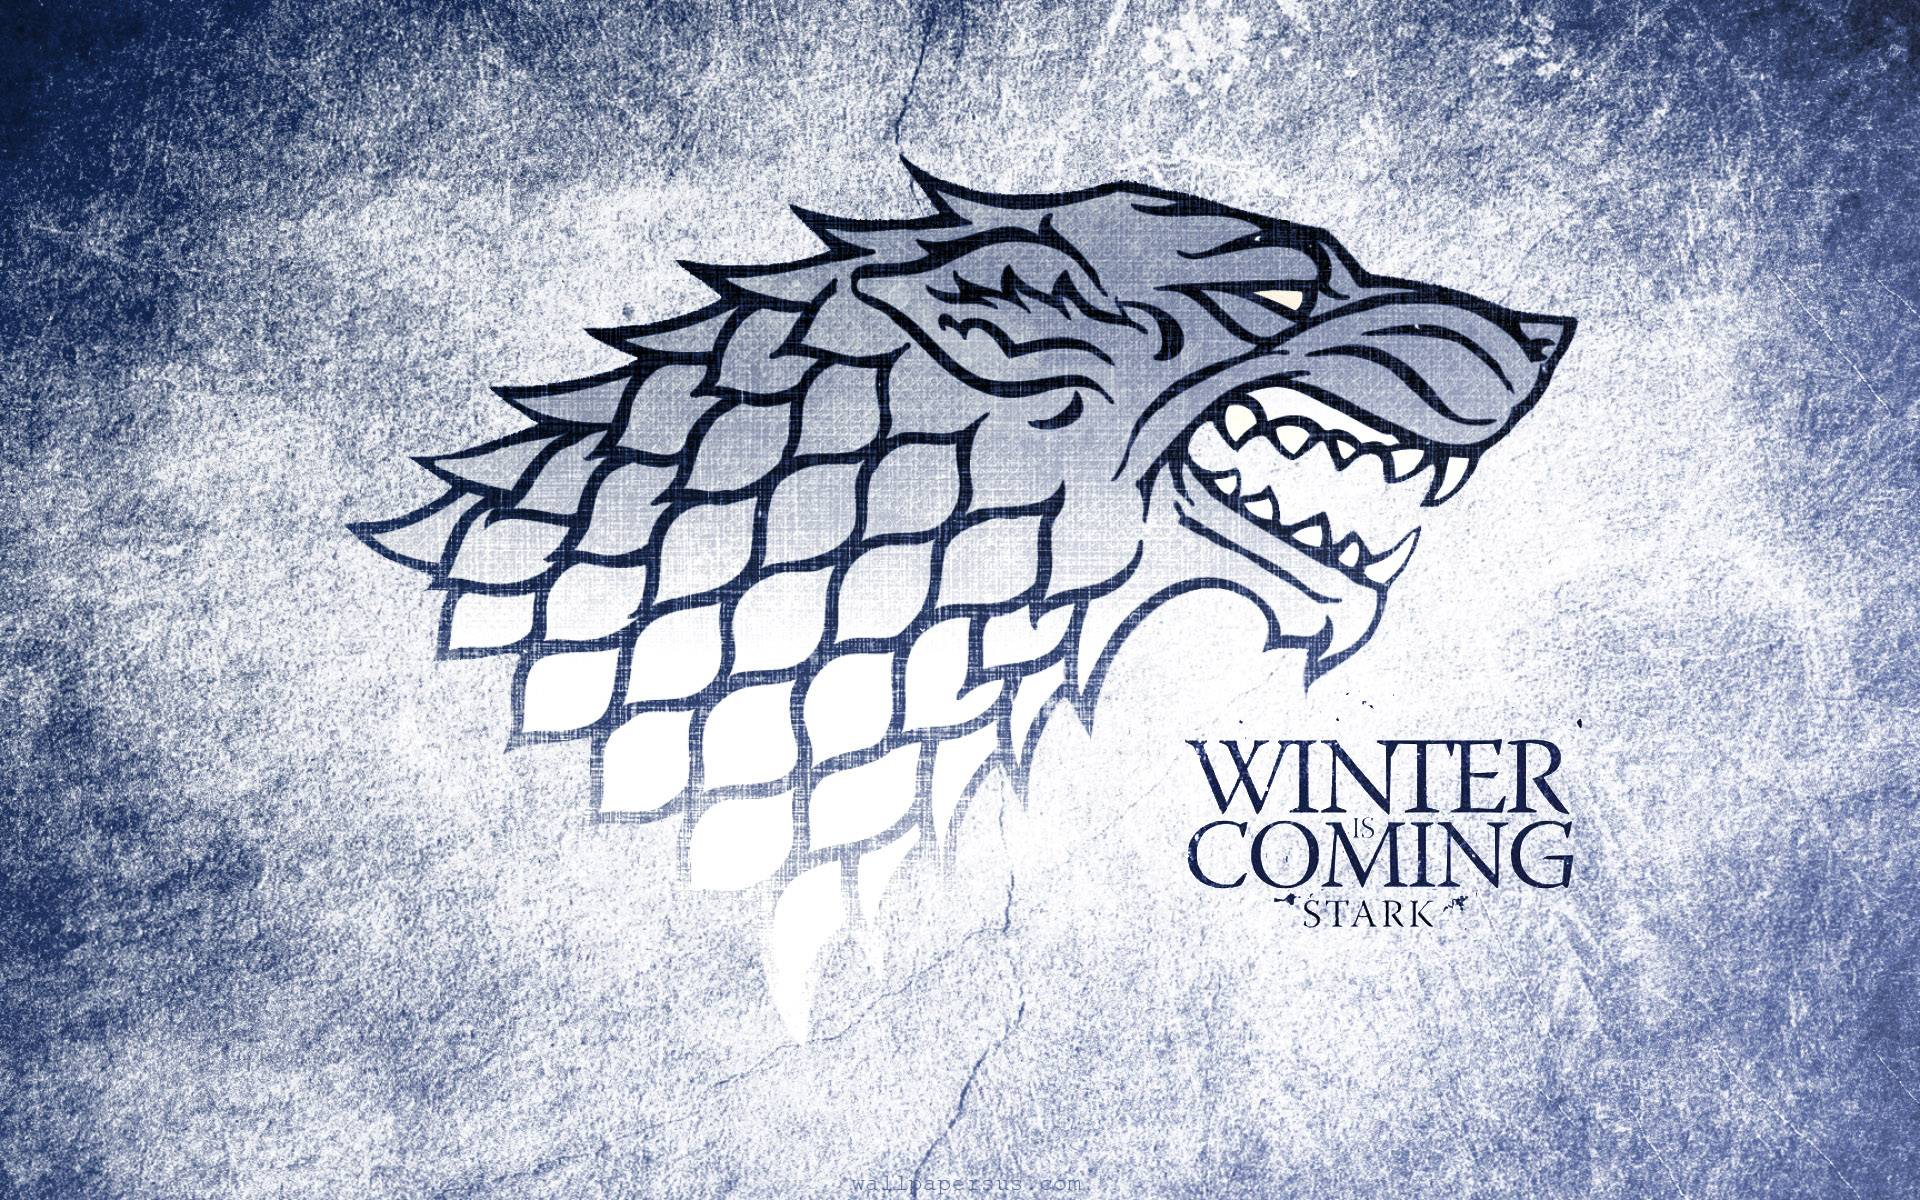 Winter Is Coming Stark Wolf Grunge Logo 1920x1200 WIDE Image TV